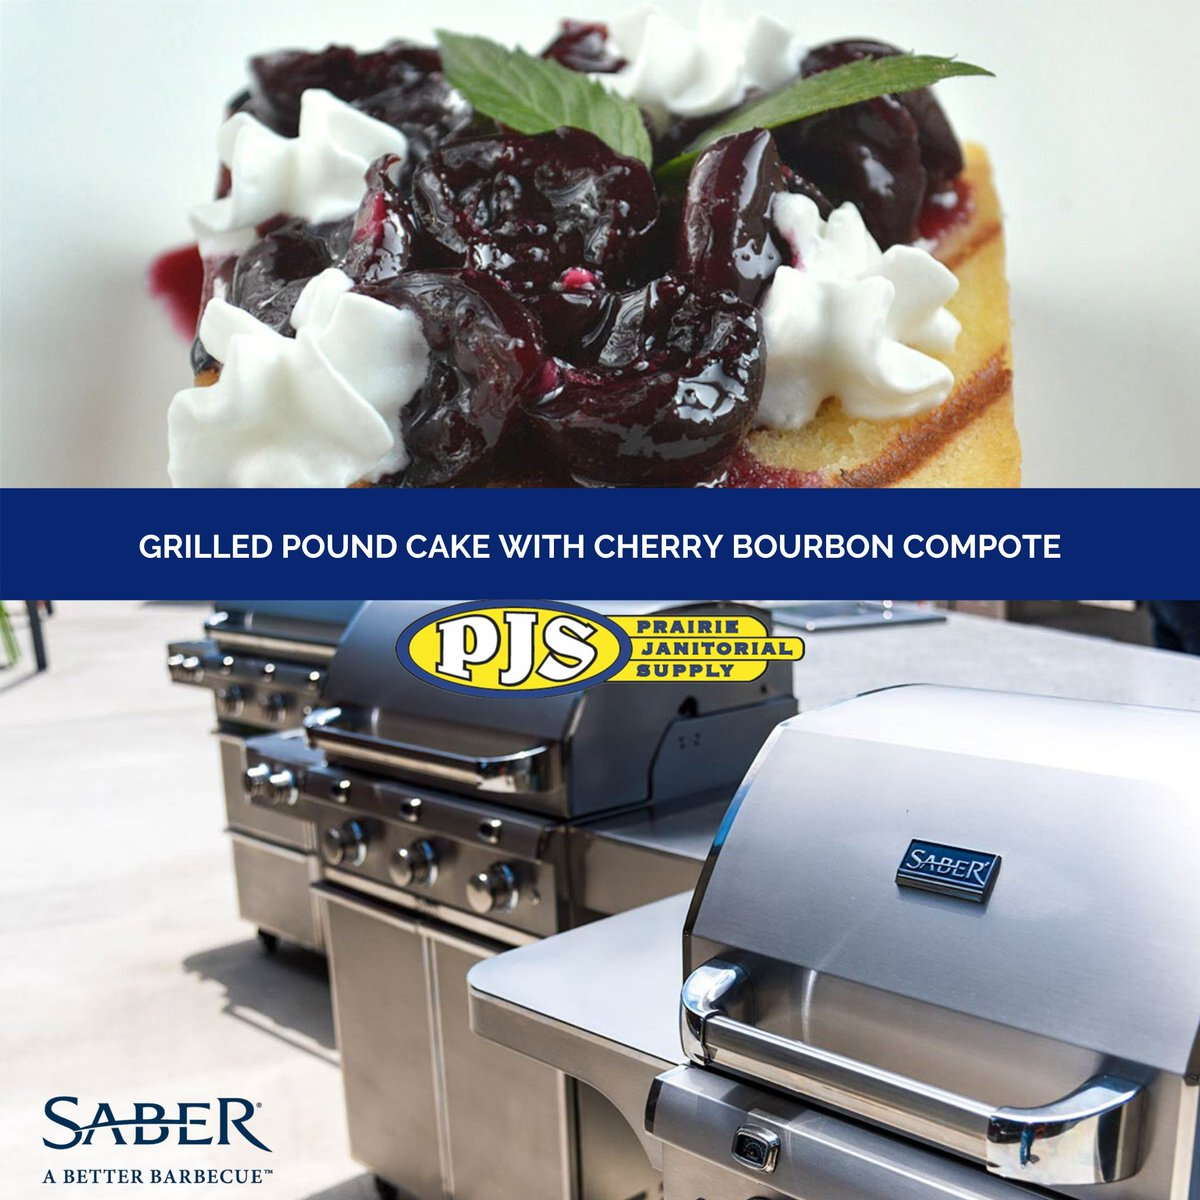 Cake is always a good idea! https://www.sabergrills.com/better-barbecue-blog/grilled-pound-cake-with-cherry-bourbon-compote/… 306-692-4599 https://www.prairiejanitorialsupply.ca #MooseJaw #ShopLocal #SaberGrillspic.twitter.com/h5G571x26S